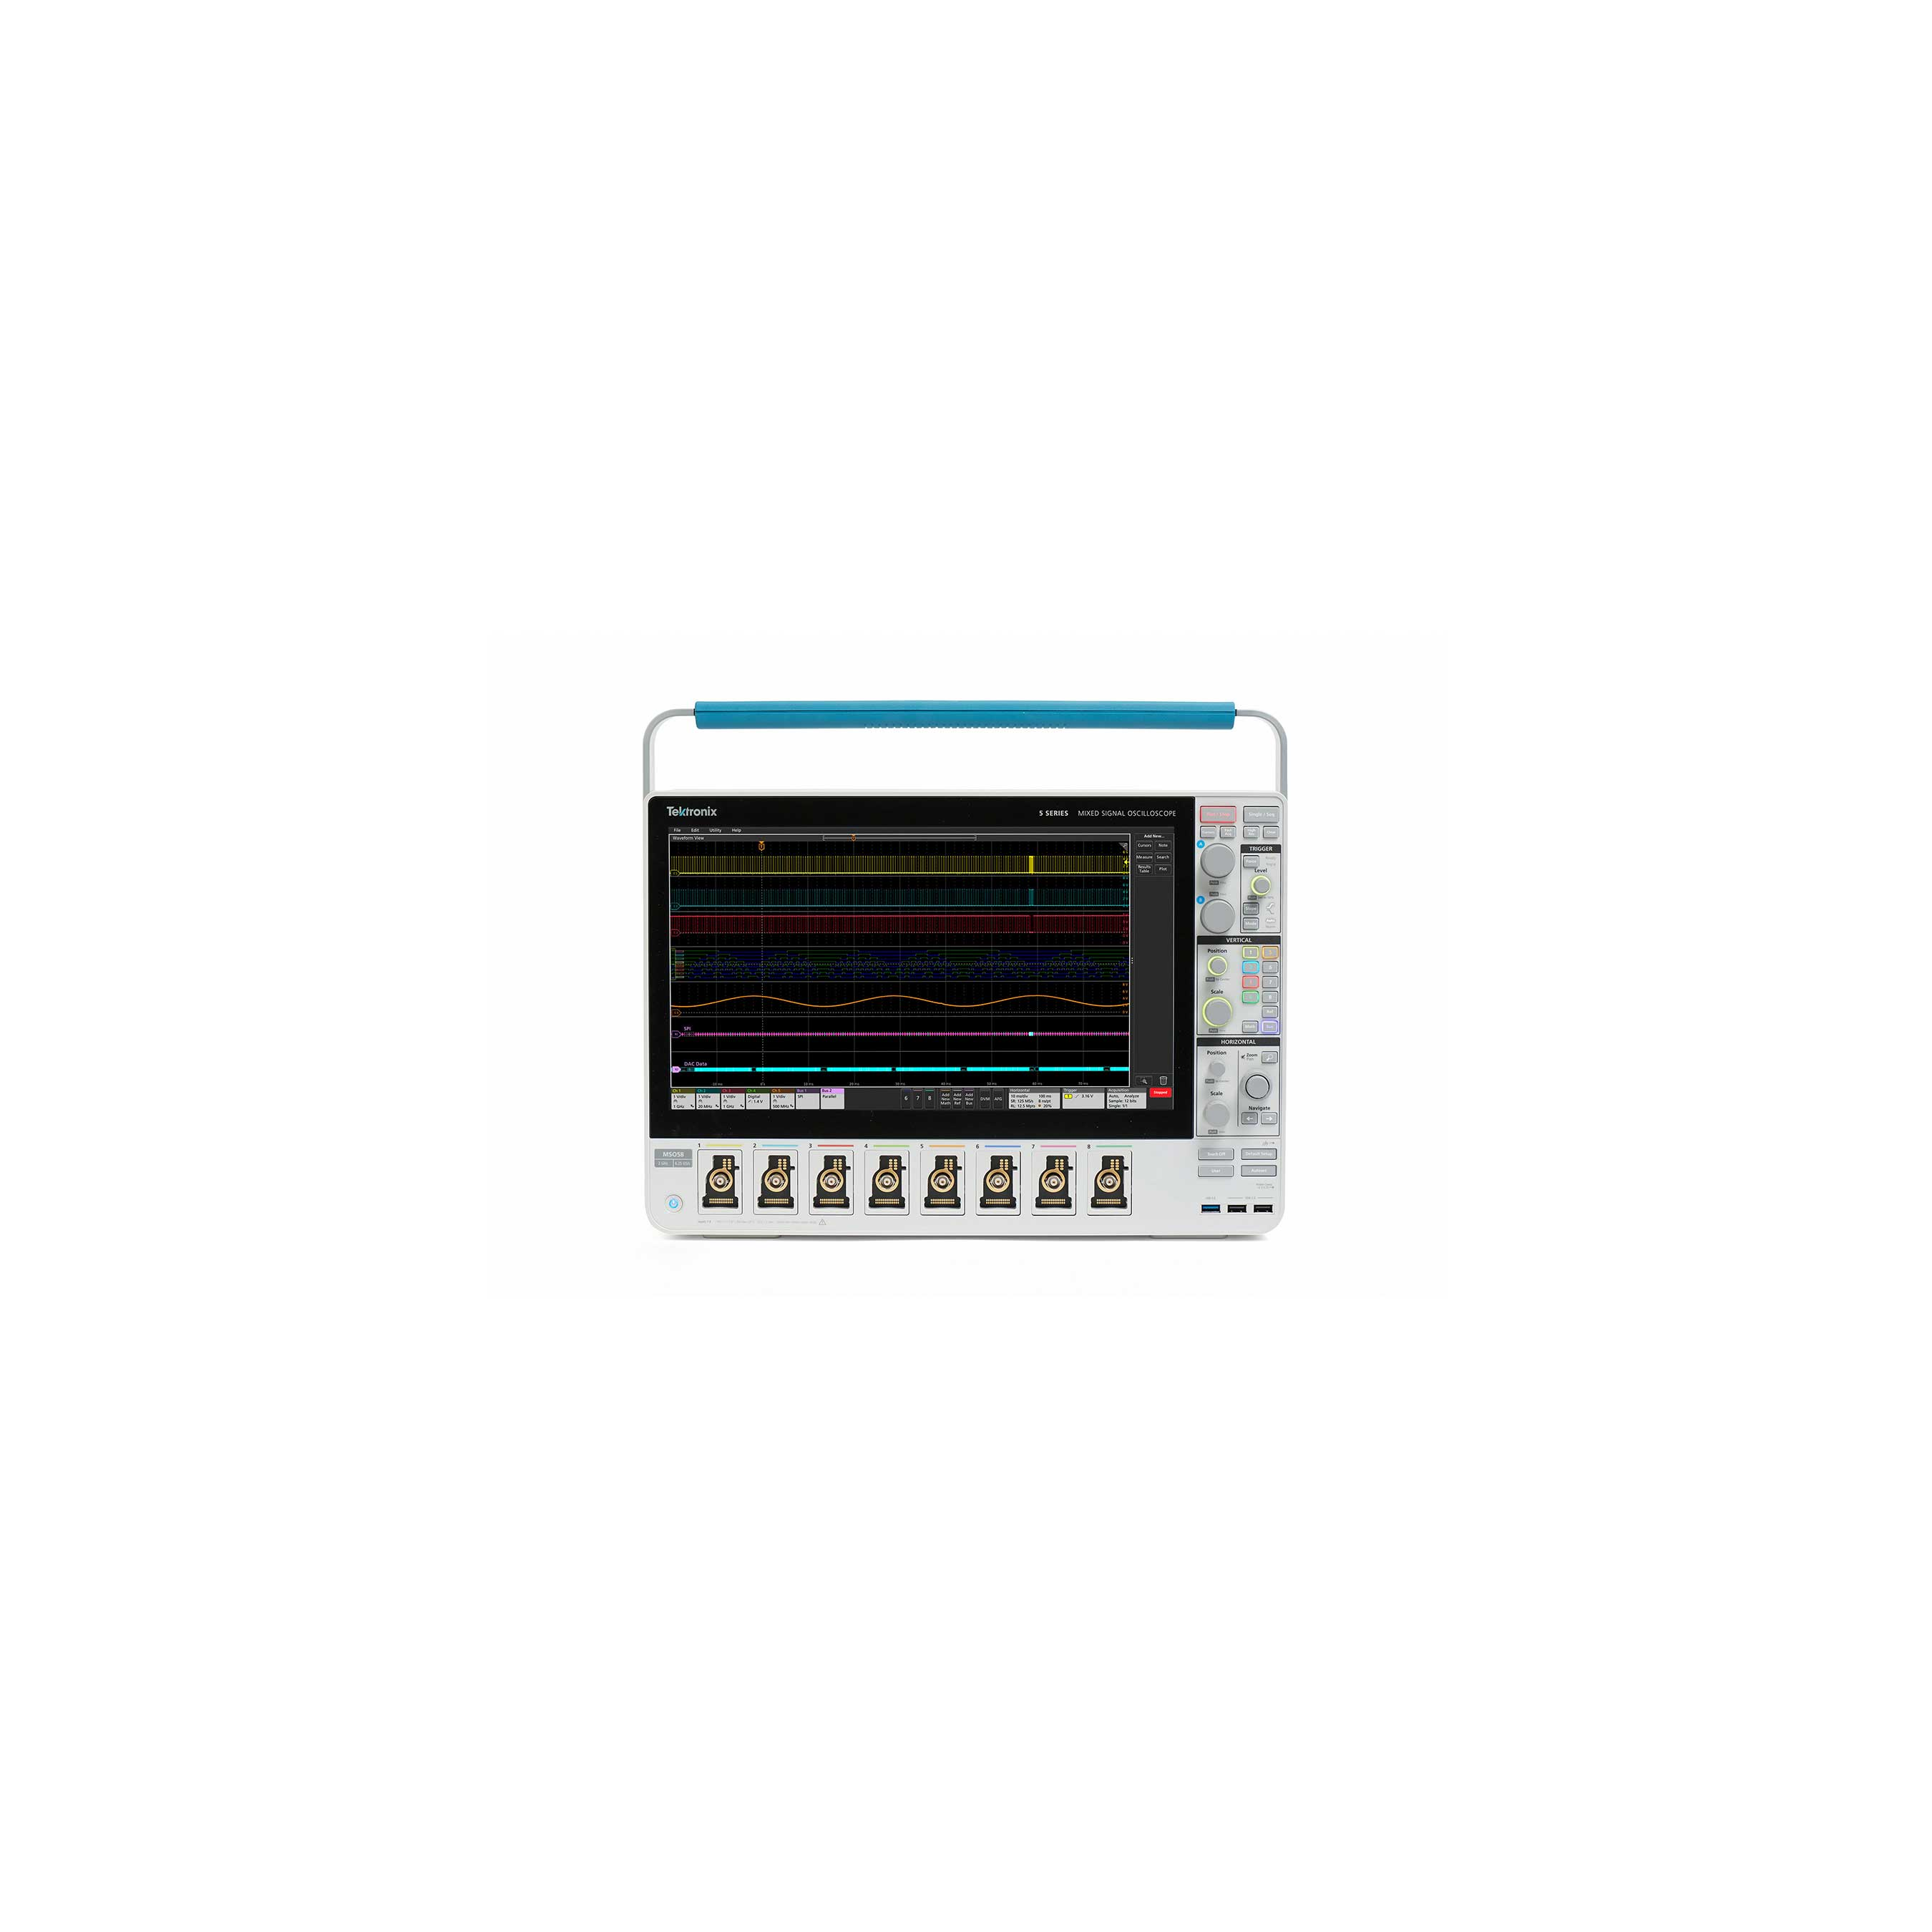 Hr16 Series: Tektronix Automates 400G PAM4 Electrical Testing